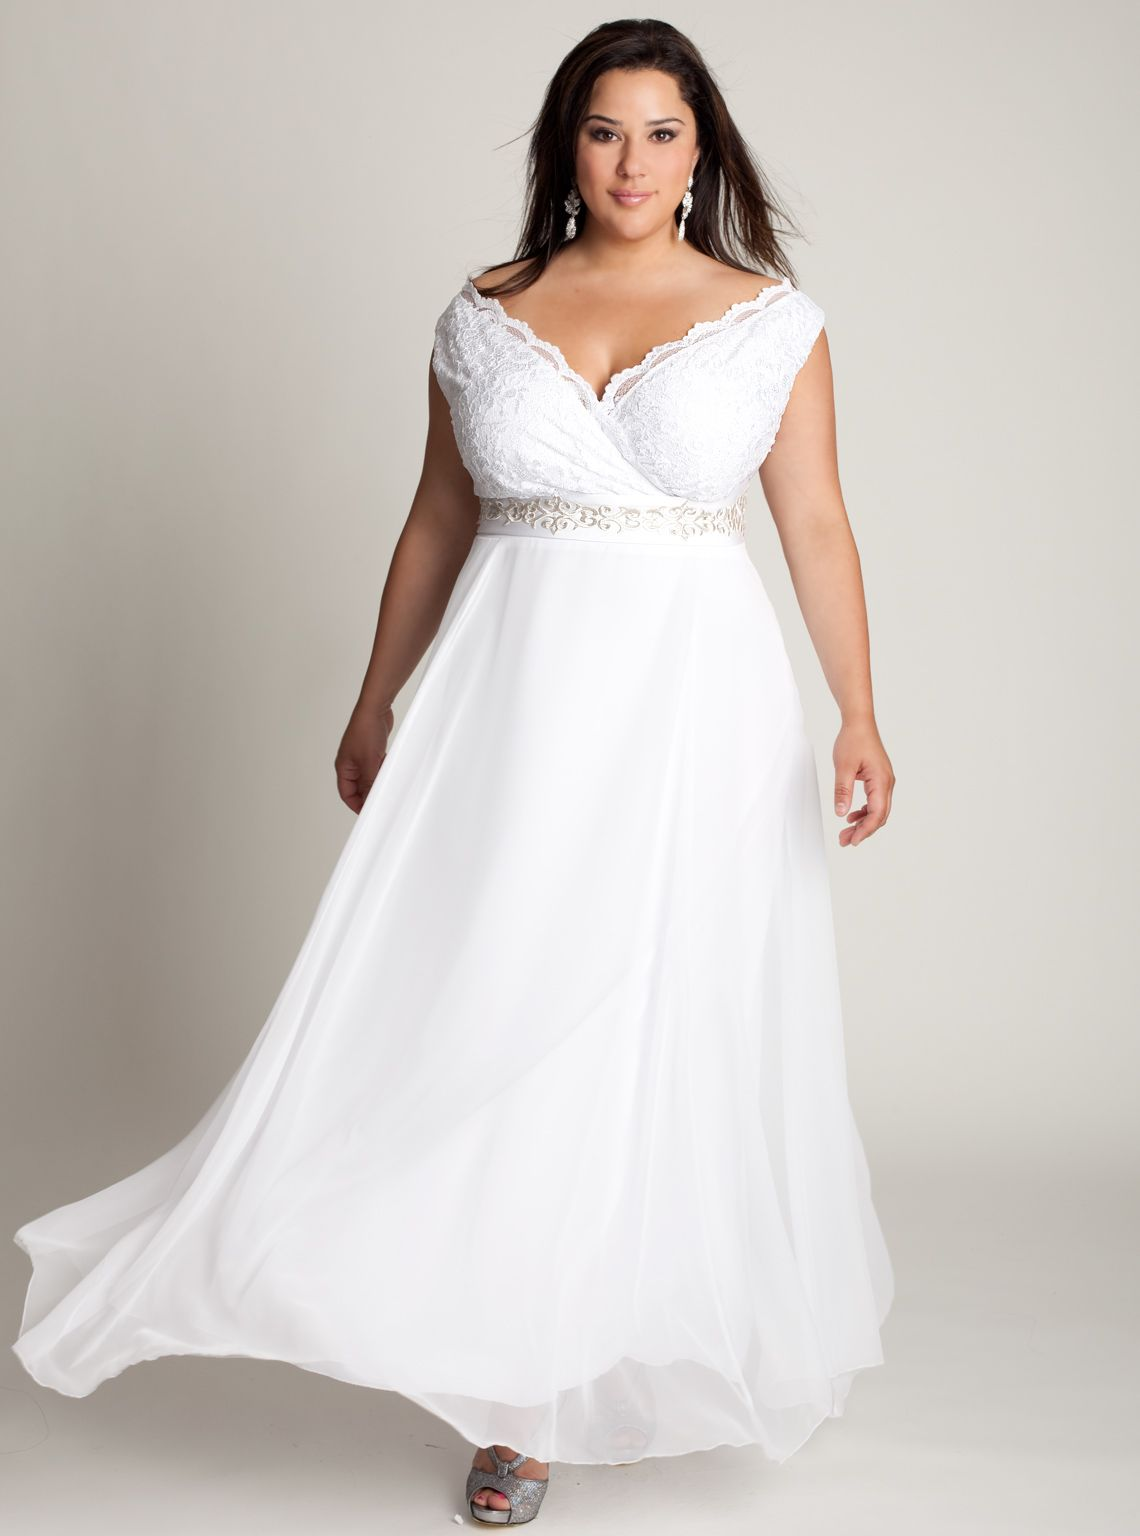 Summer Outdoor Casual Wedding Dresses For Plus Size Sized Fashion